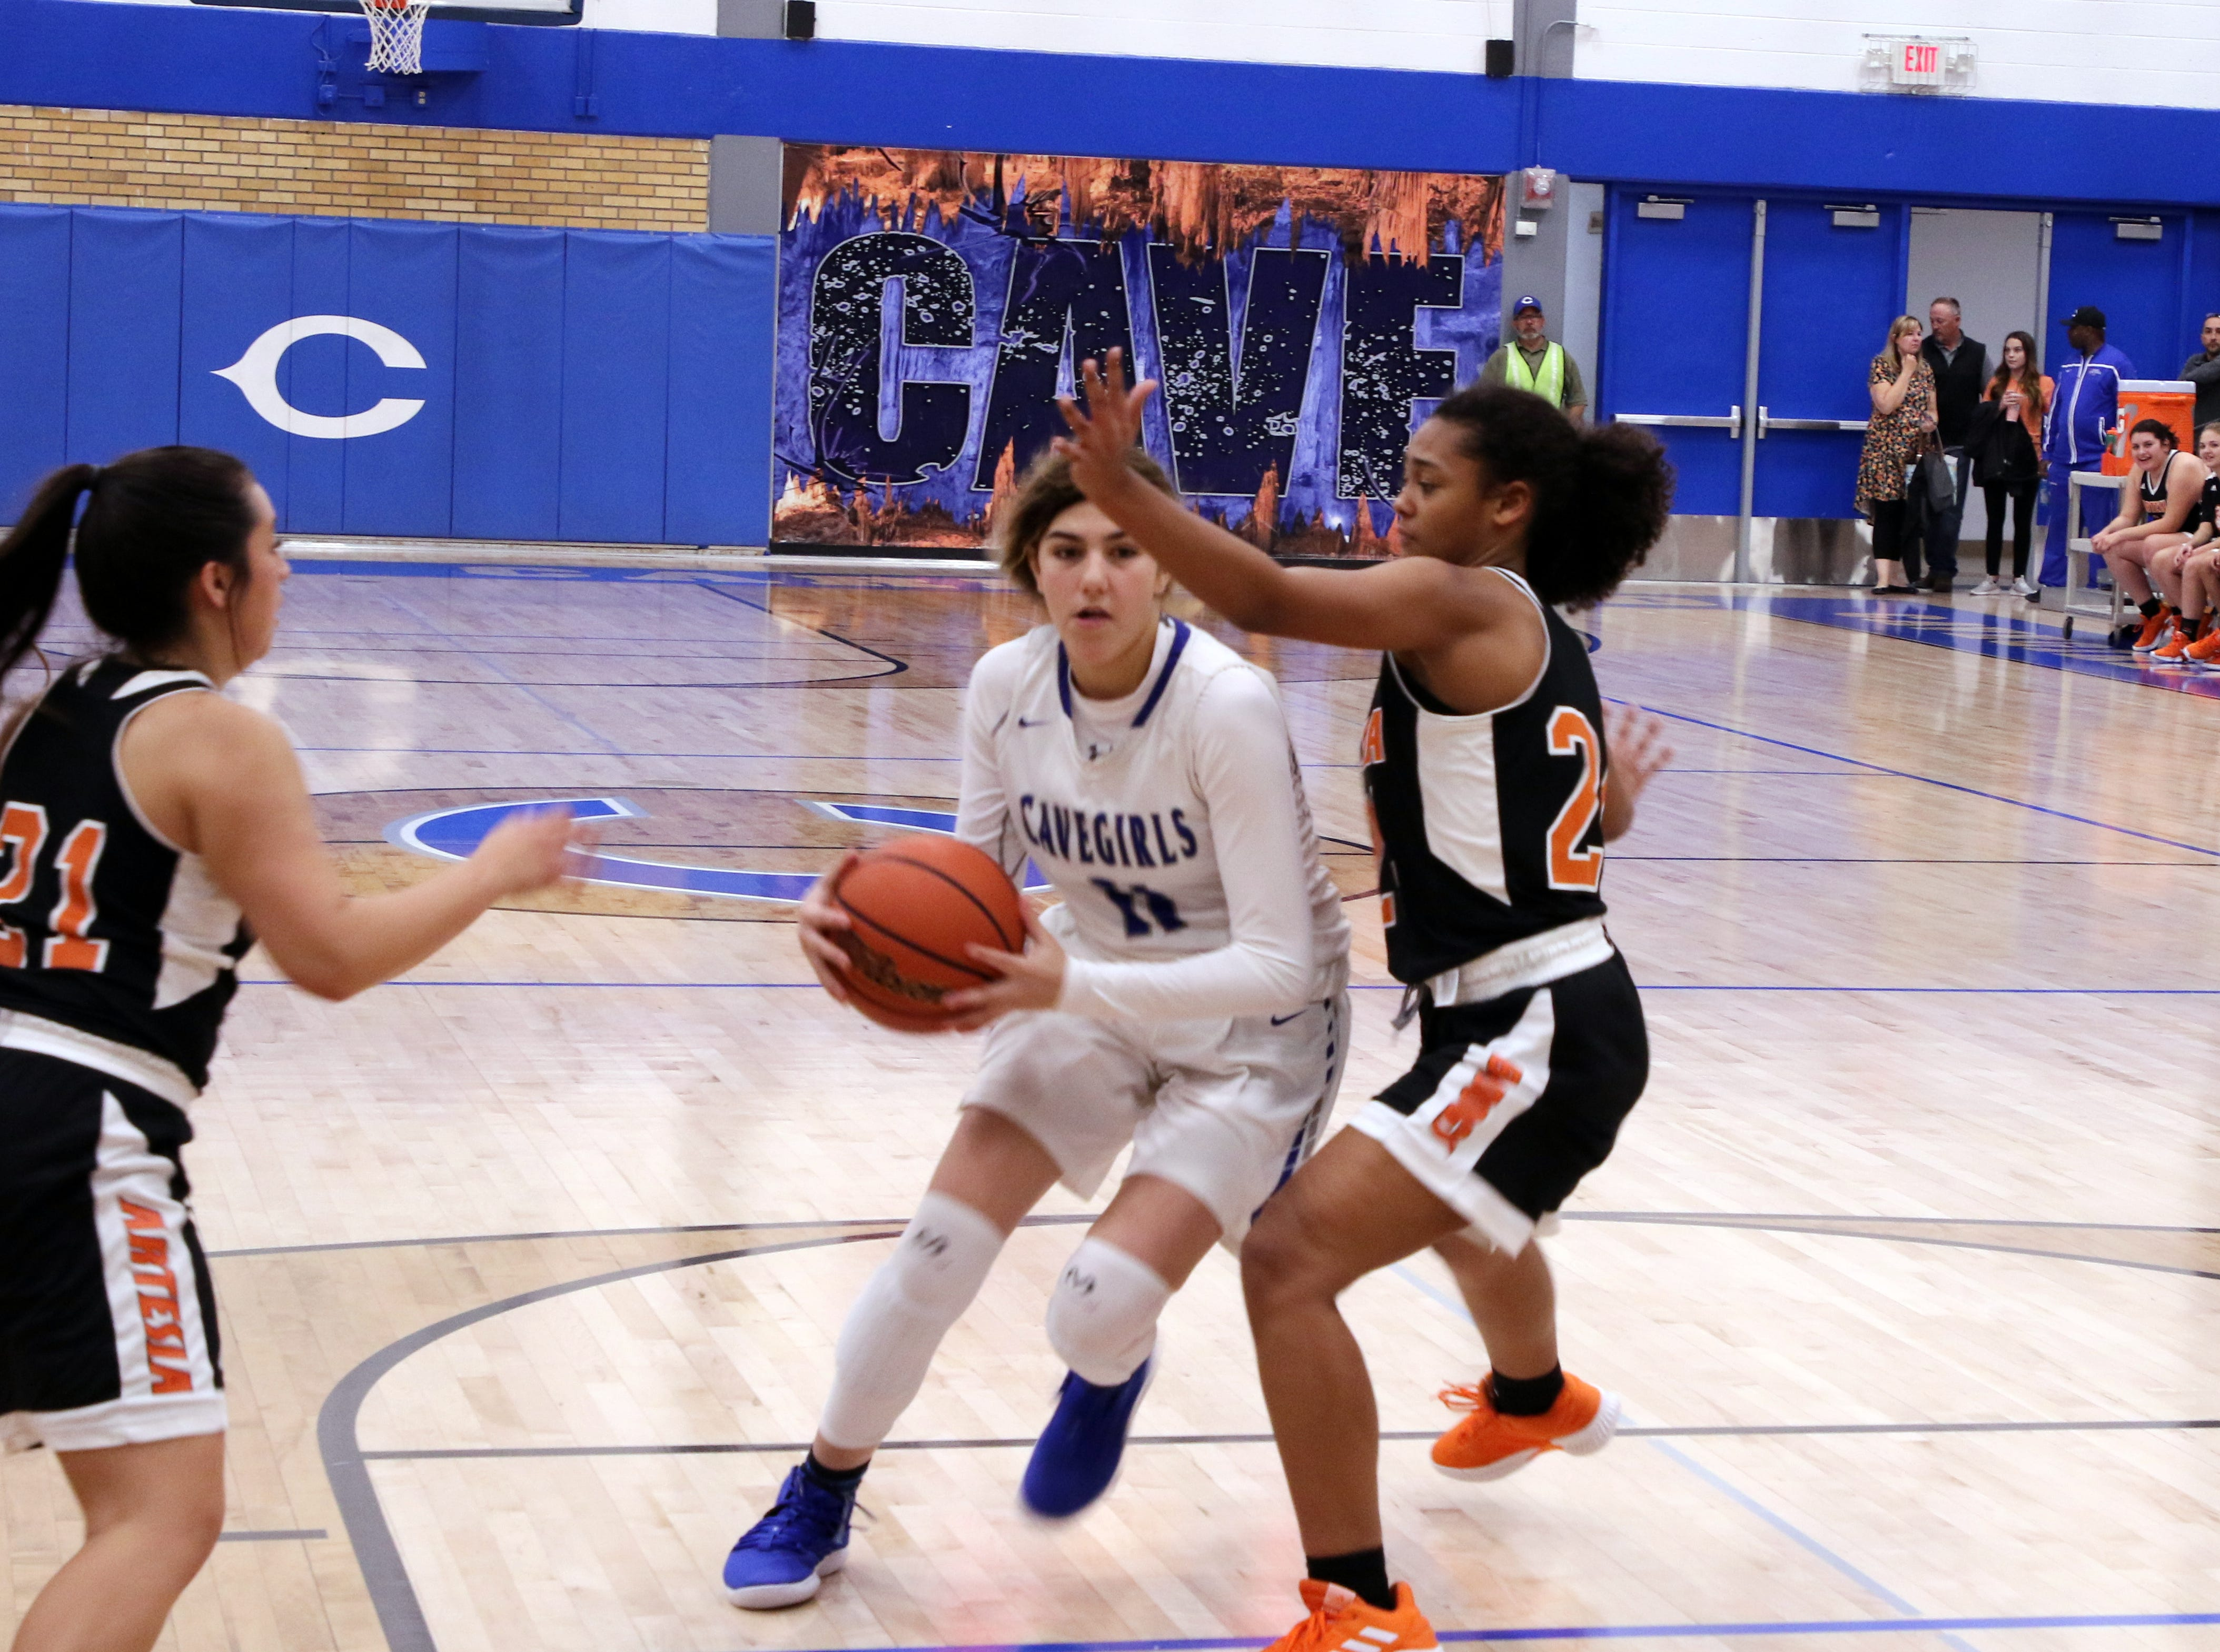 Carlsbad's Teran Tiller (11) drives through Artesia's Kyrah Gonzales (21) and Elliot Harrison (24) during Tuesday's game. Carlsbad beat Artesia, 61-32.